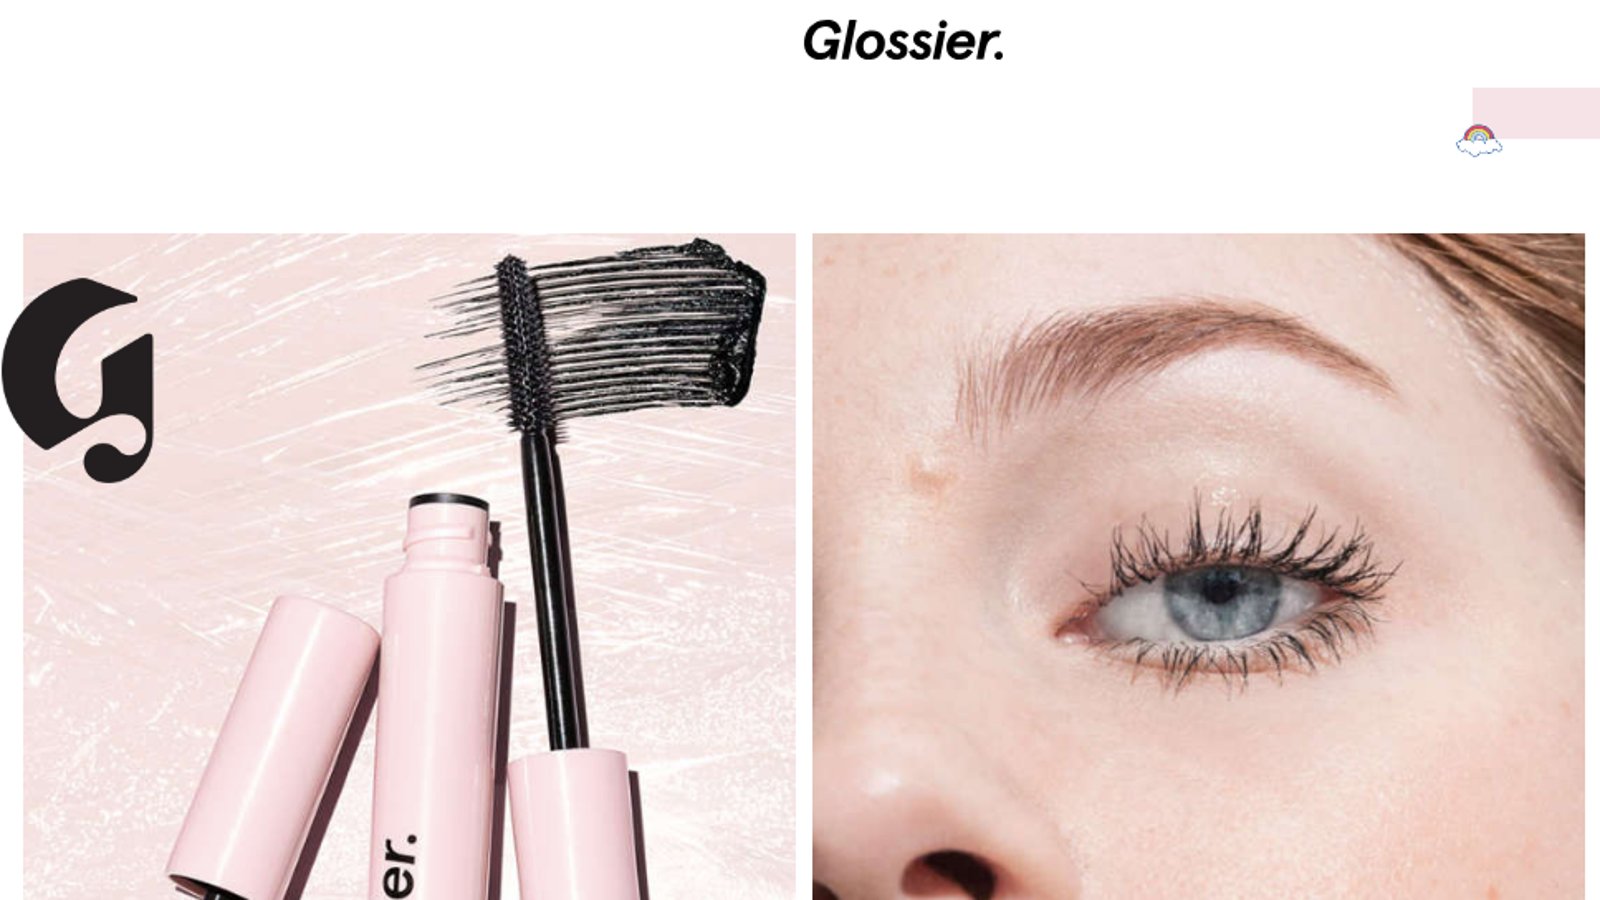 photo image This Lawsuit Against a Trendy Makeup Brand Highlights How the Web Is Broken for Millions